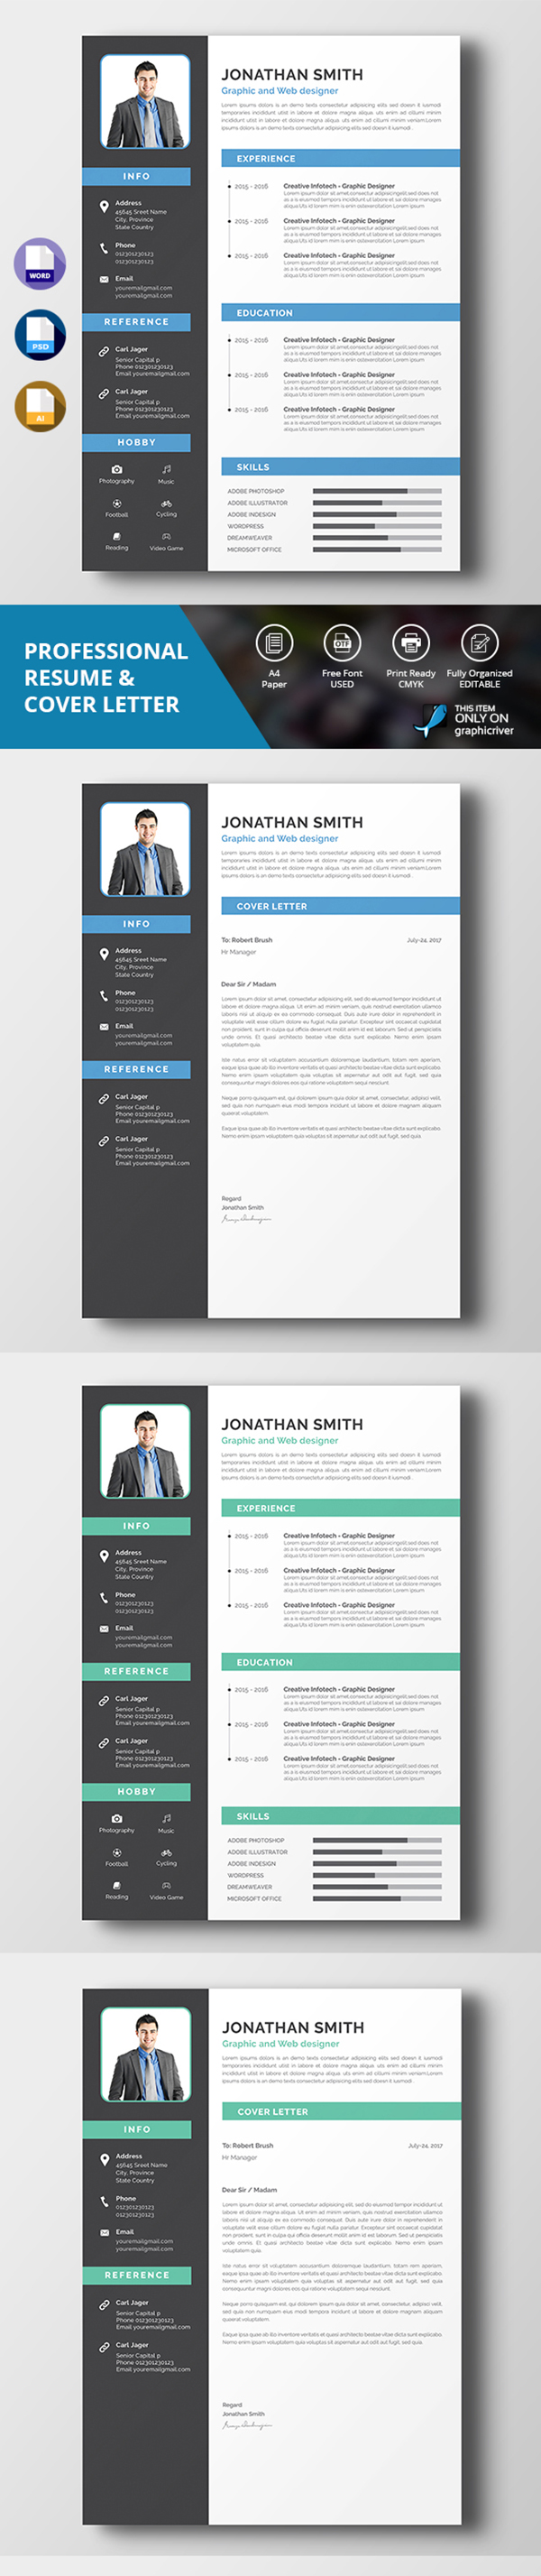 Simple Resume & Cover Letter